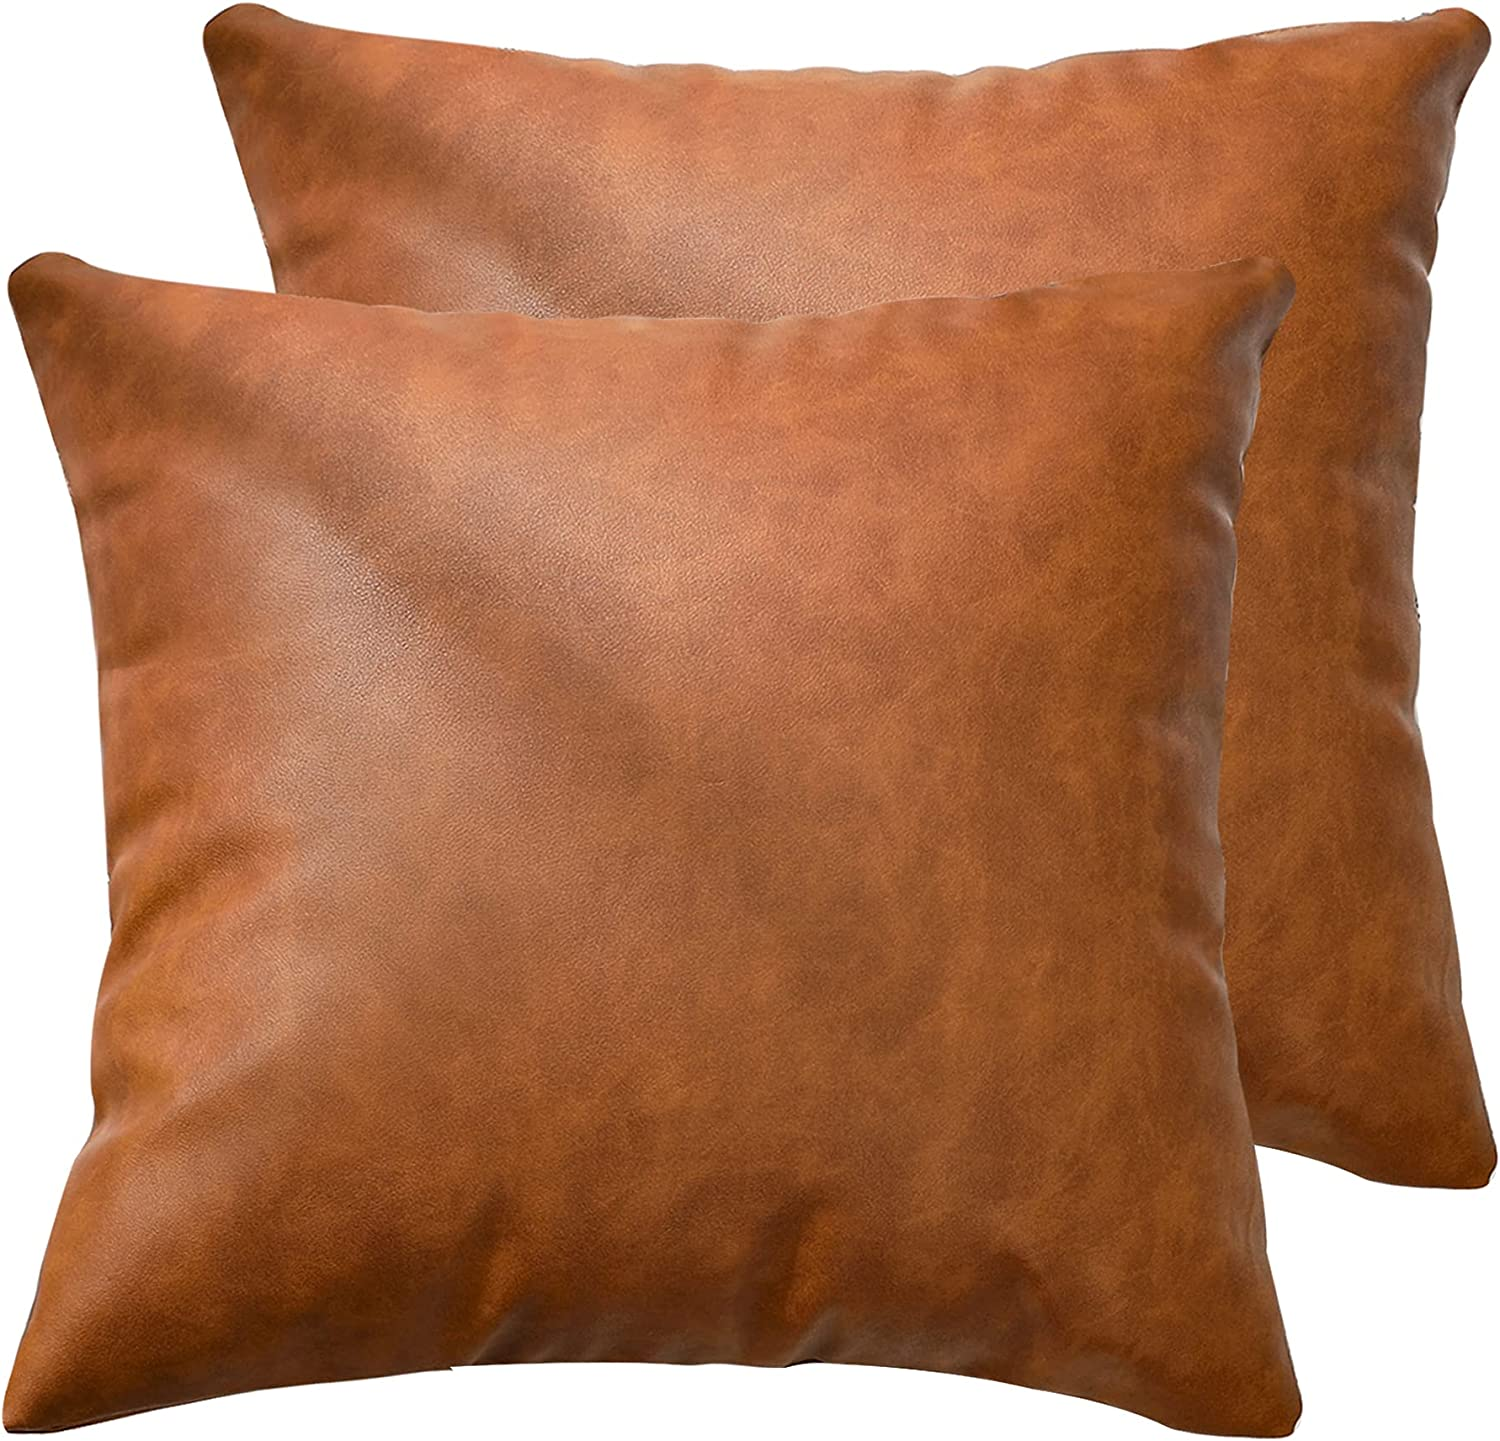 KKY Faux Leather Farmhouse Throw Pillow Cover inch 18x18 Modern Financial sales sale Attention brand